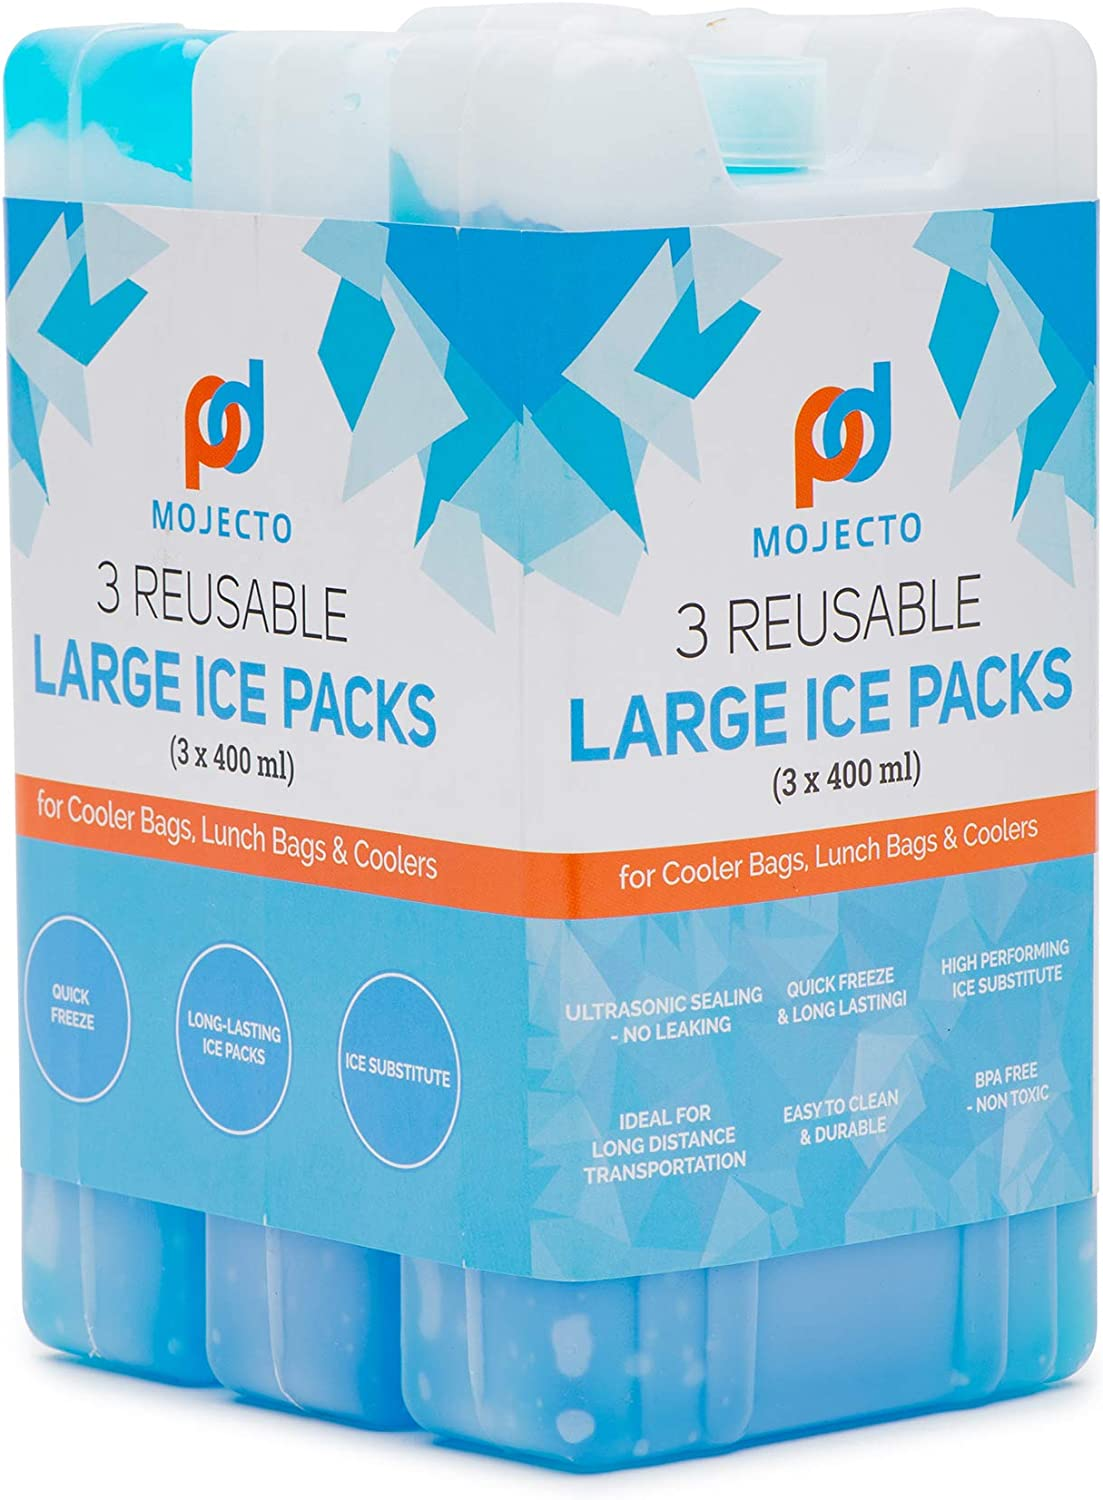 MOJECTO Large Thick Ice Pack for Cooler Lunch Bags: to Keep Your Food and Beverages Cold for Hours. Leak-Proof, Reusable, Long-Lasting, Freezer-Safe (Set of 3).